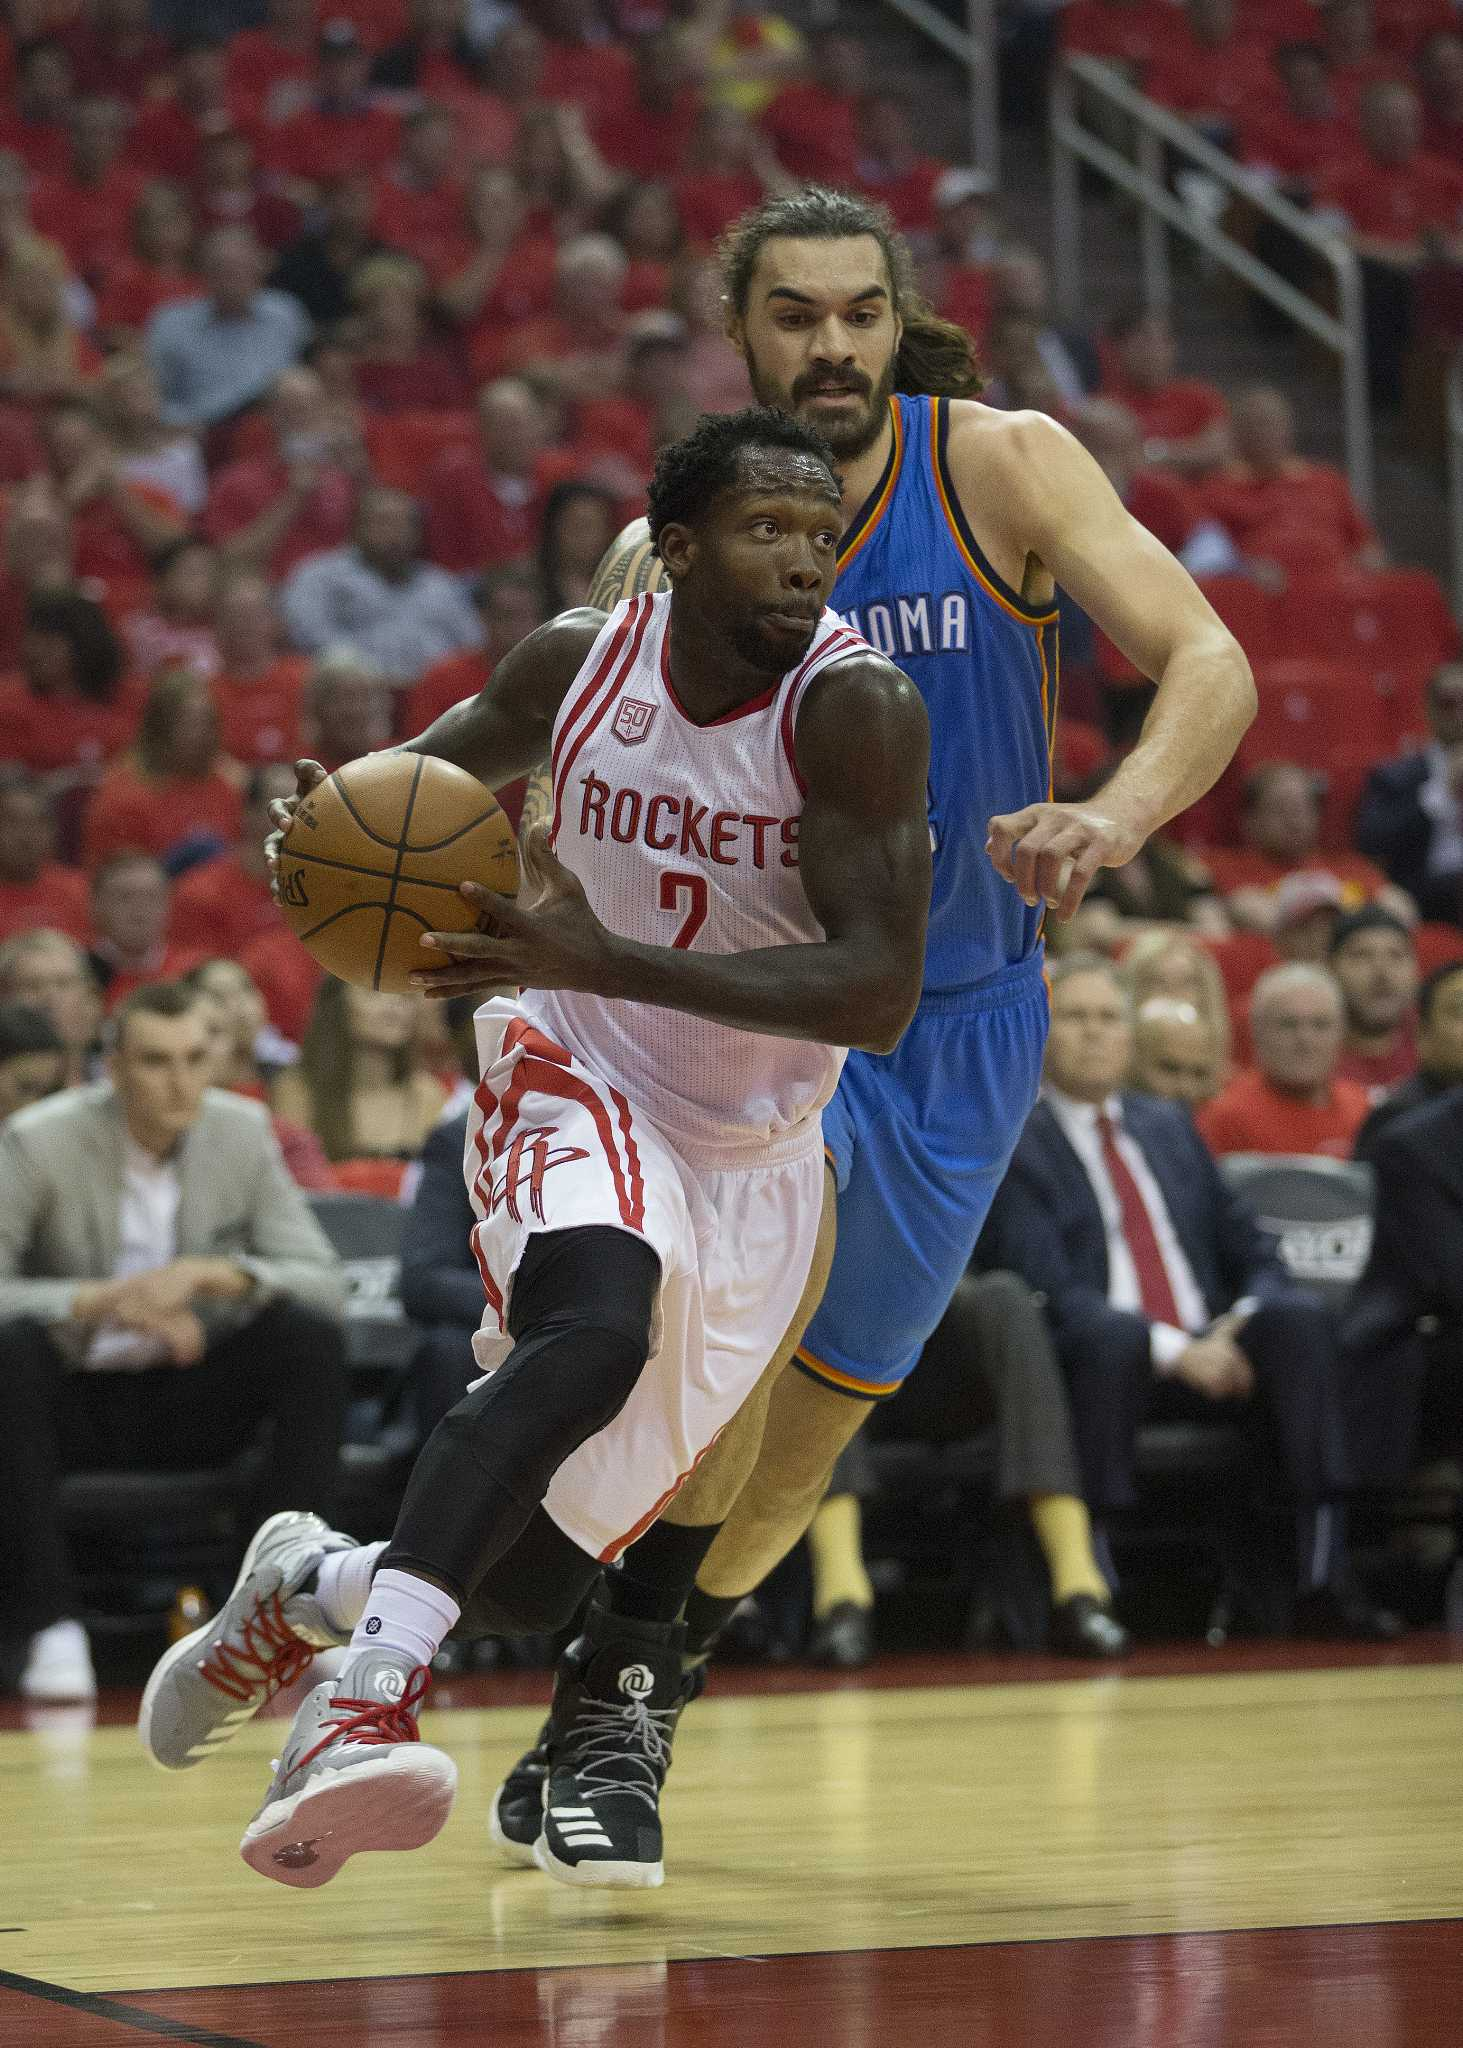 9ab08ec2 Creech: Rockets wait for tough second round matchup - Houston Chronicle